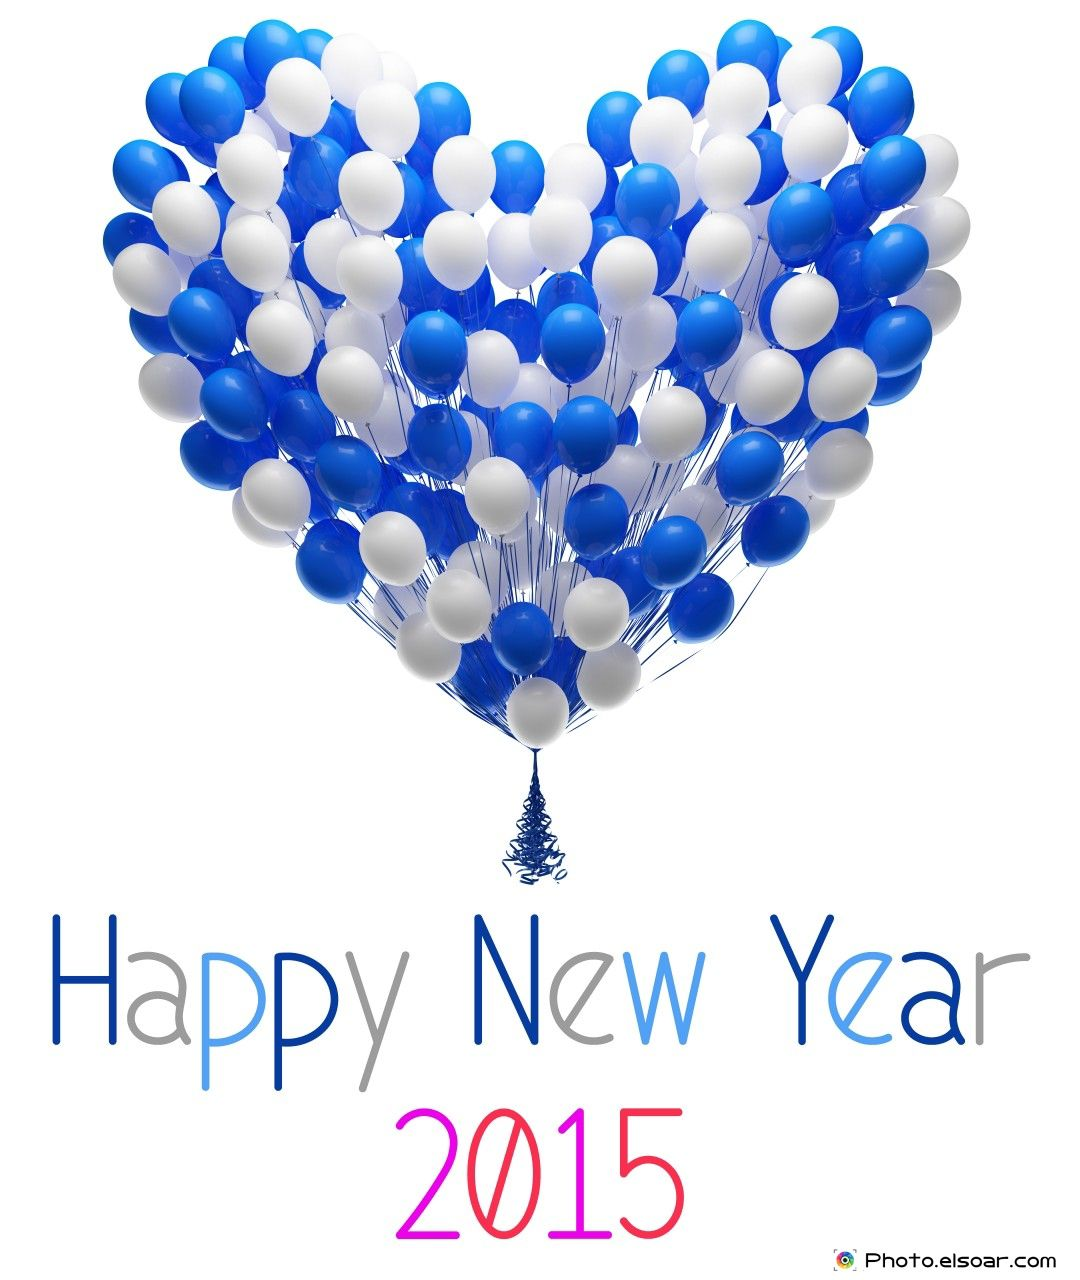 2015 Balloons Wallpapers Gandoss Wallpapers 1080x1280